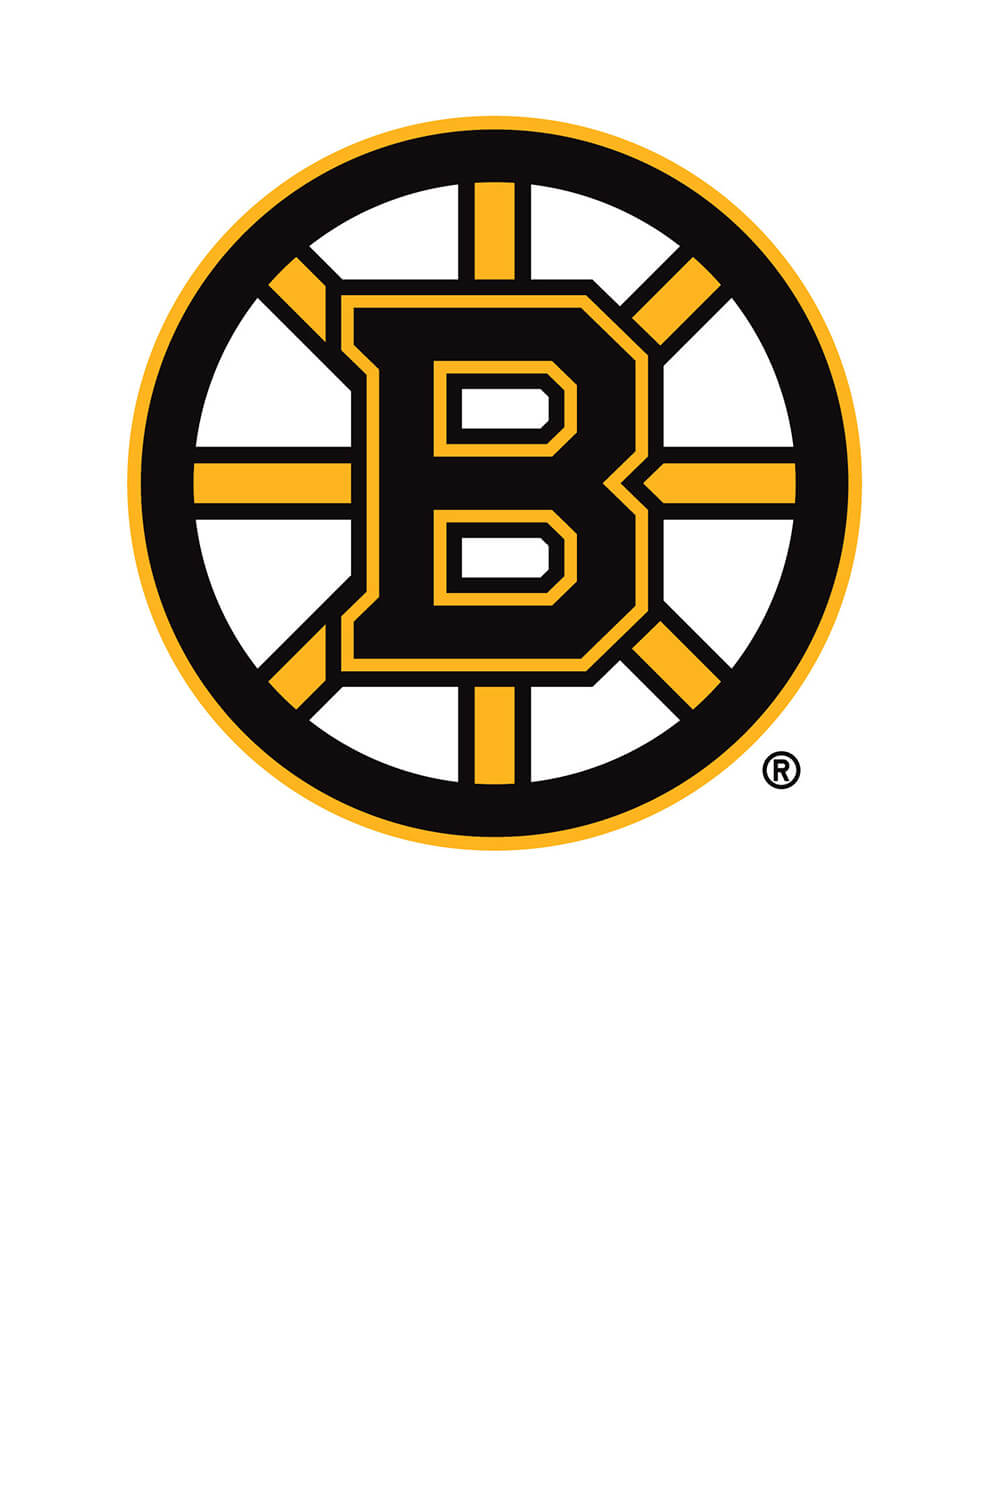 Boston bruins clipart free picture library stock Amazon.com: Hockey: Collectibles & Fine Art picture library stock